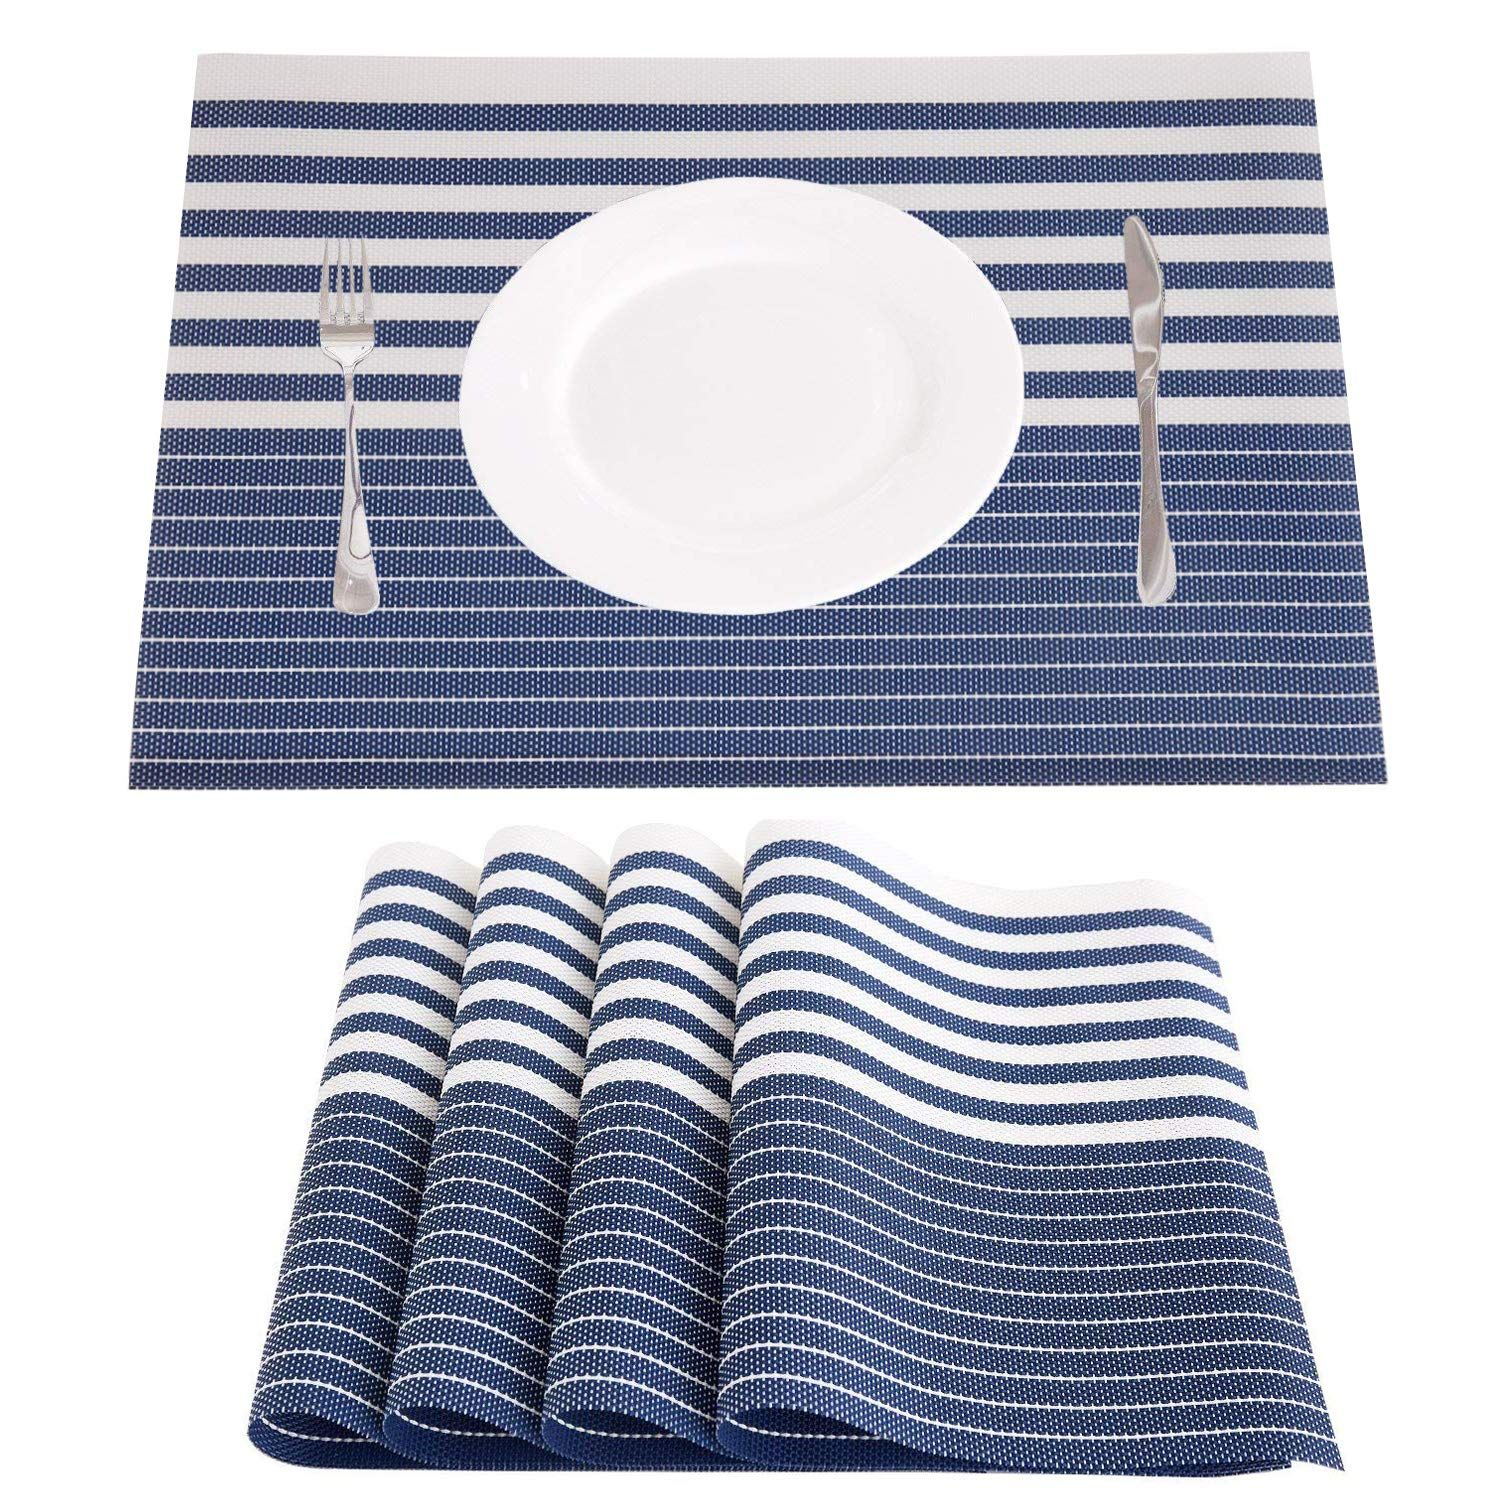 Njcharms Placemats Set Of 4 Heat Resistant Washable Nautical Blue Placemats For Dining Kitchen Table Environmental Pvc Lavorist Blue Placemats Dining Table In Kitchen Woven Placemats